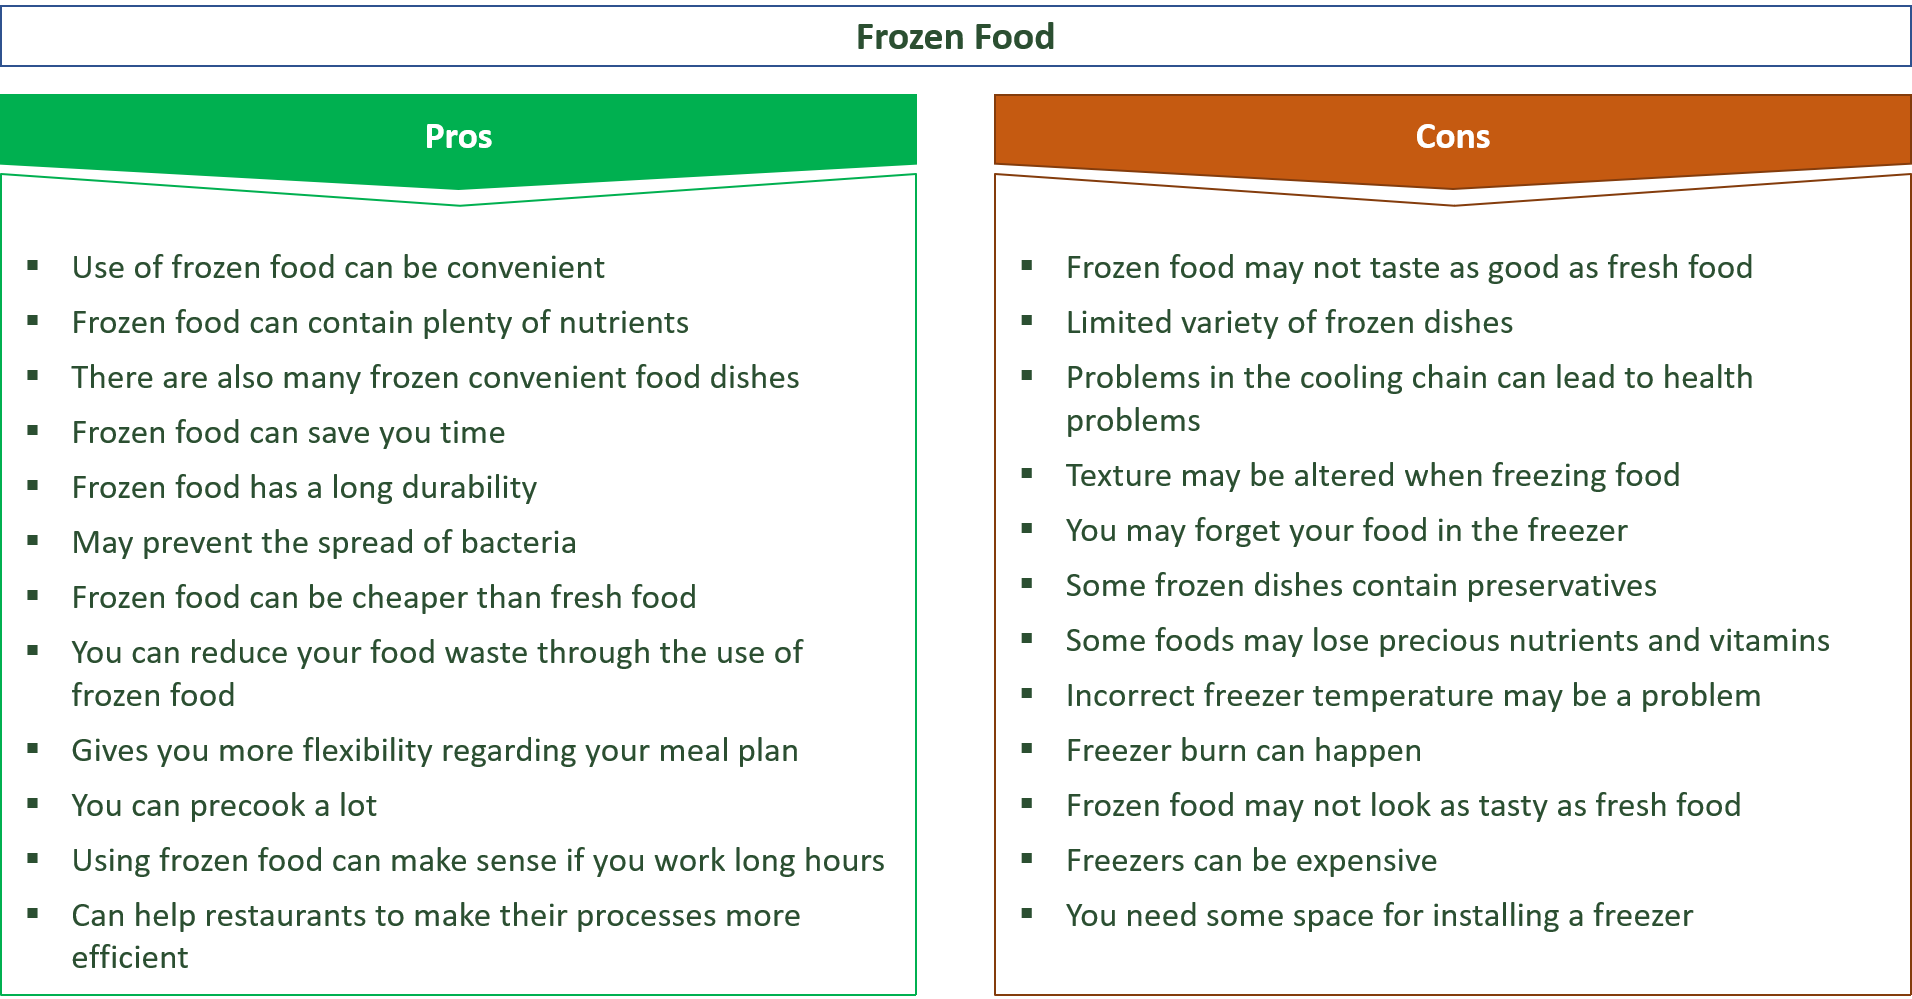 advantages and disadvantages of frozen foods